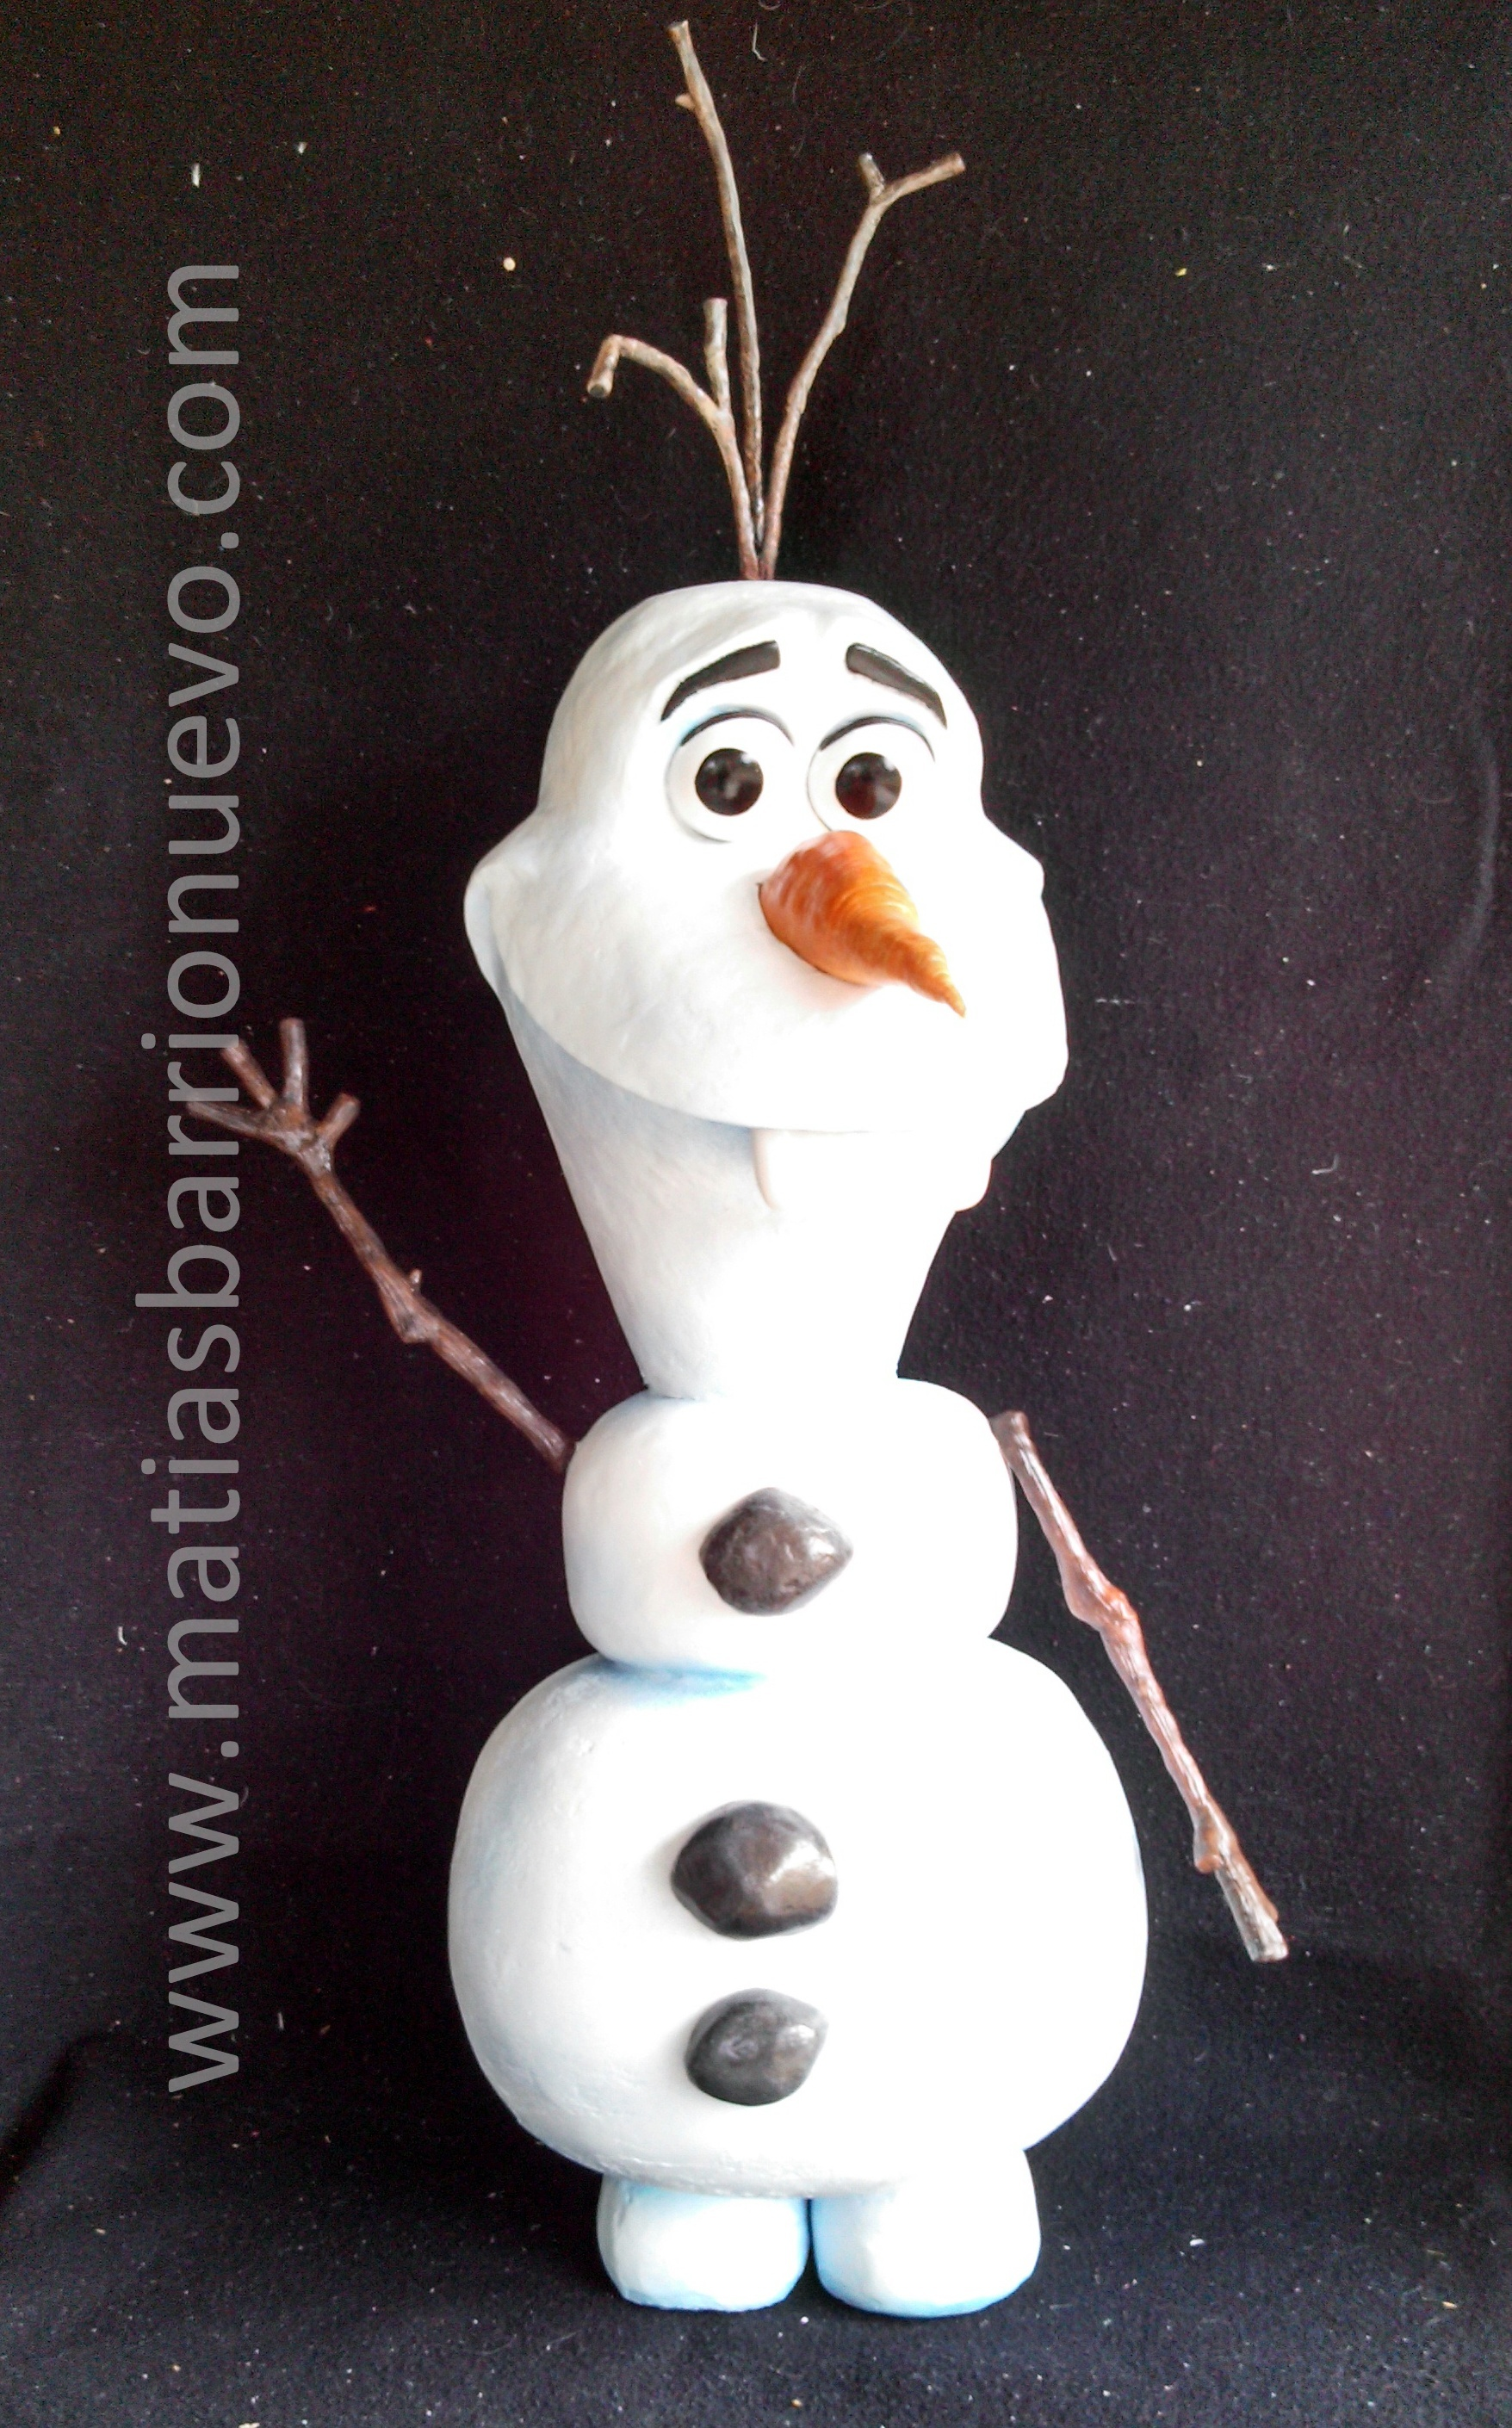 Olaf Frozen - Tamaño real